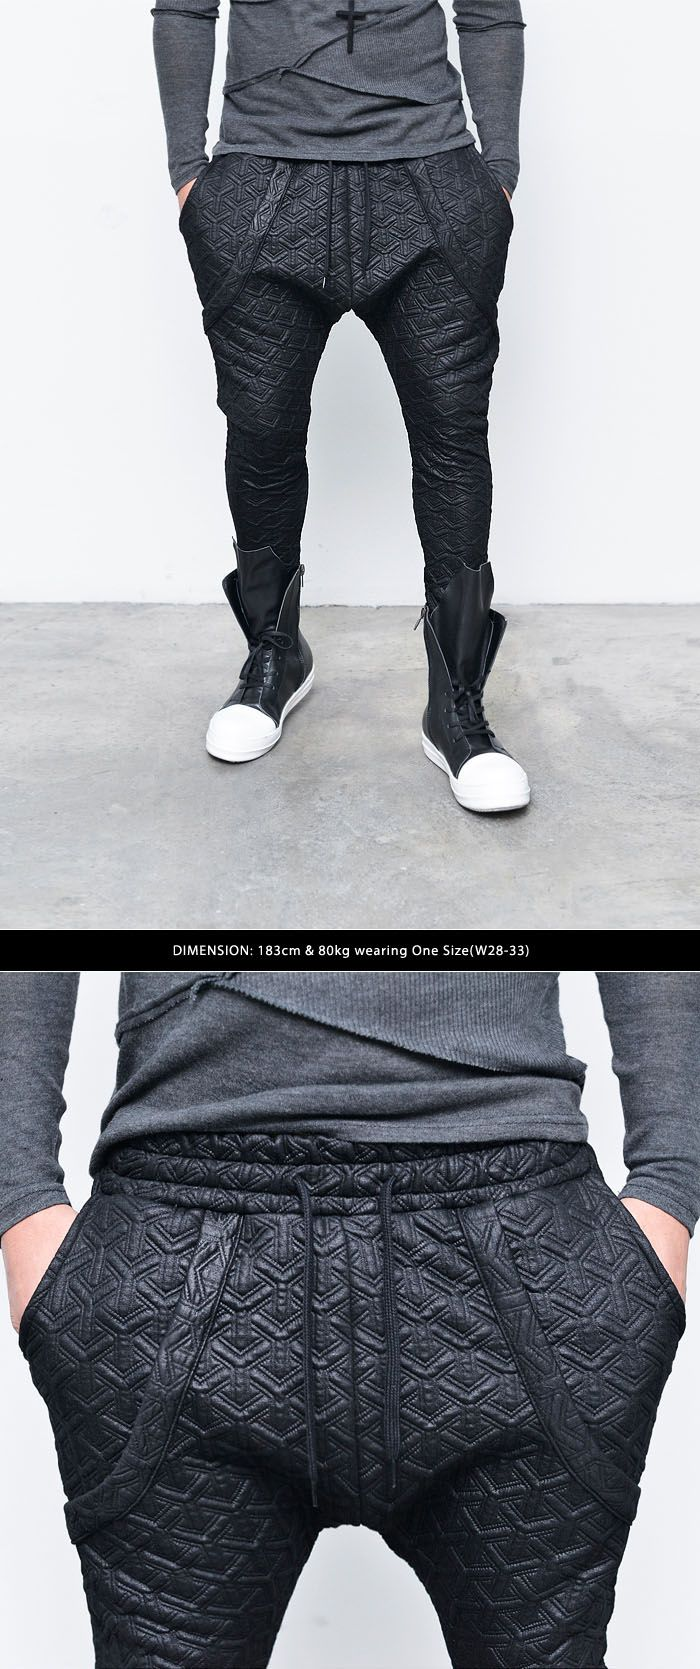 Bottoms :: Sweatpants :: Re) Coated Y Embossed Drop Jogger-Sweatpants 169 - GUYLOOK Men's Trendy Fashion Clothing Online